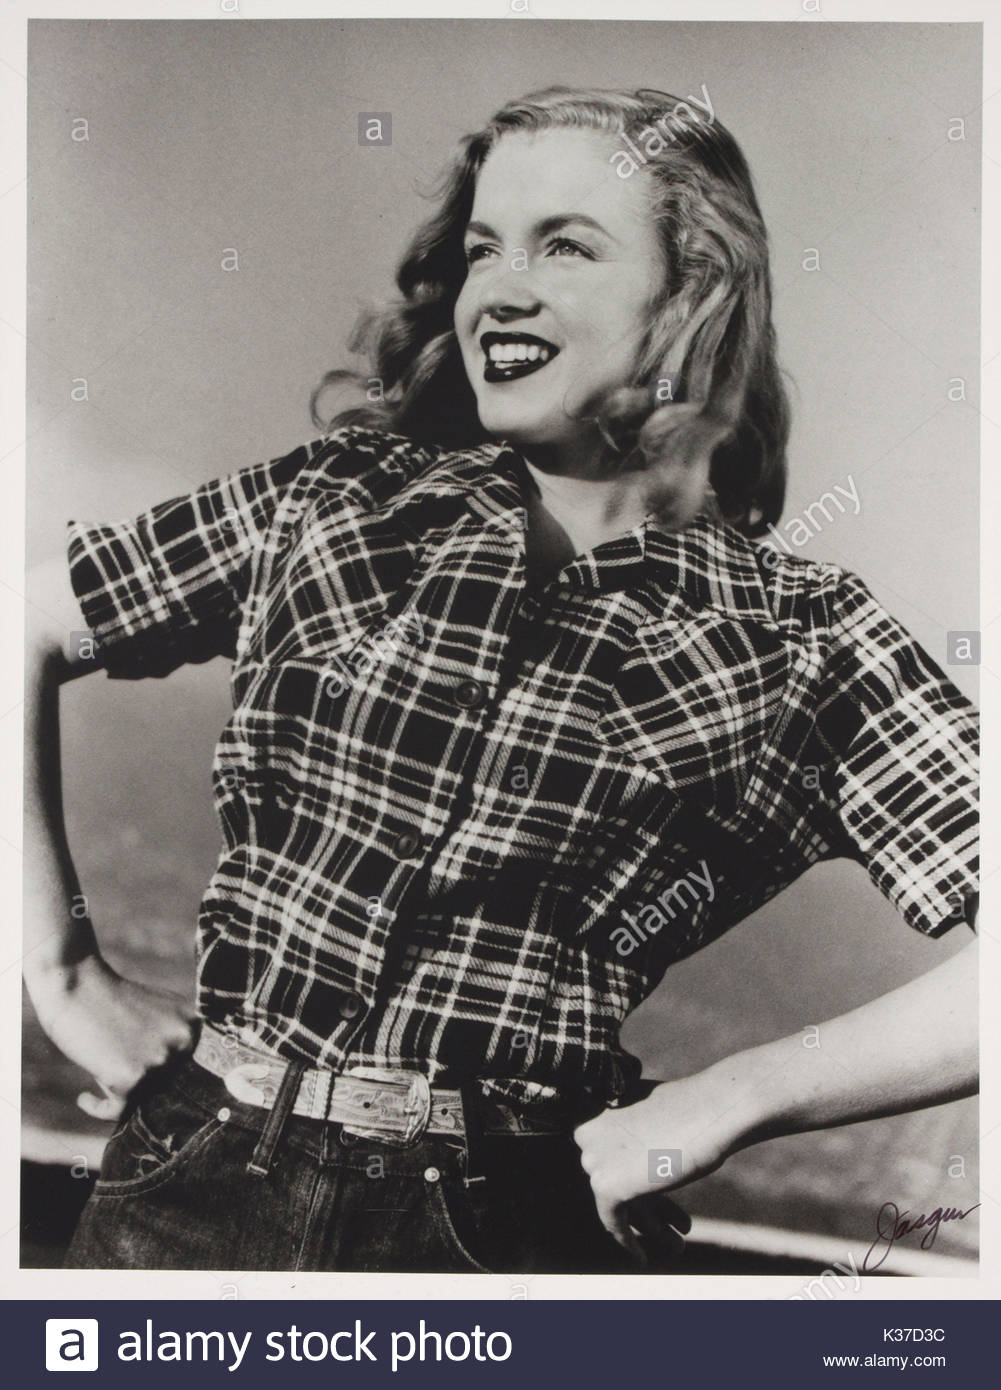 Norma Jean Dougherty AKA Marilyn Monroe. Here is an amazing glimpse of a teenage Marilyn Monroe before she became - Stock Image